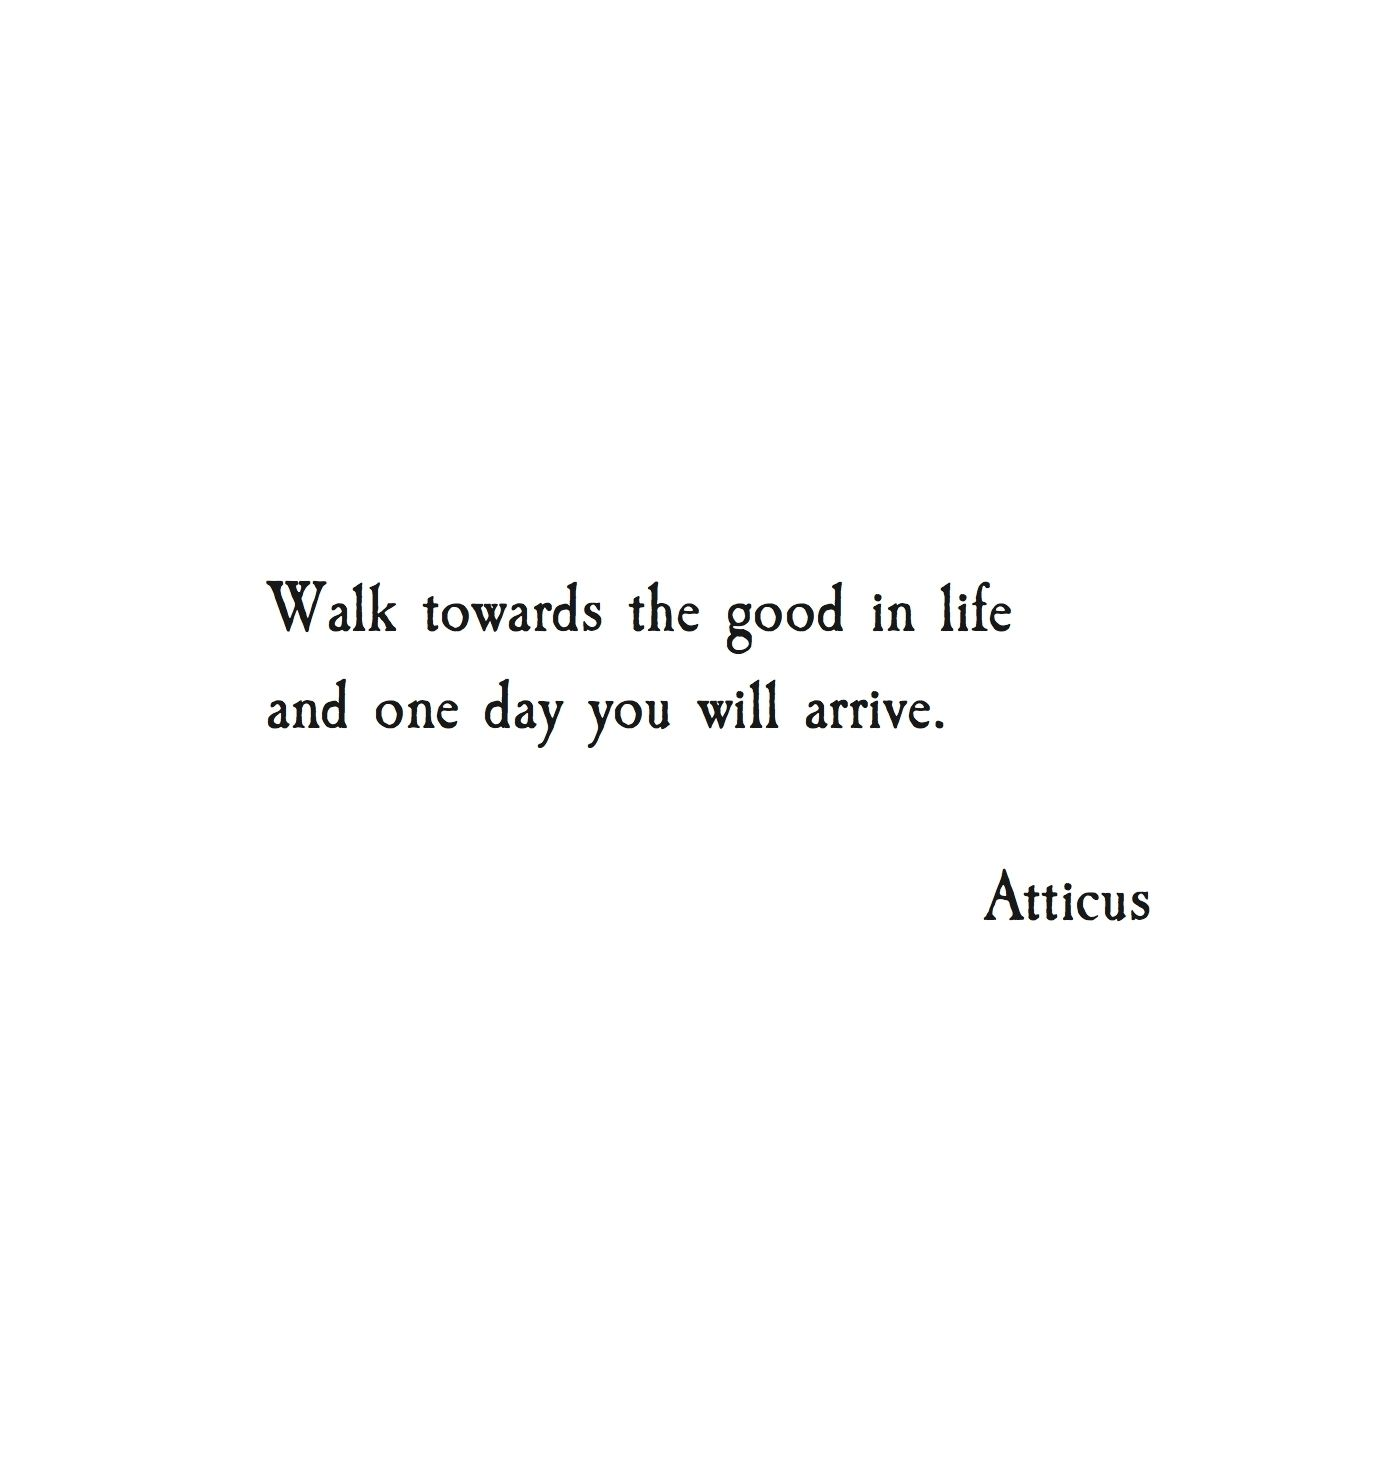 Poem Quotes About Life Entrancing Walk Towards The Good In Life And One Day You Will Arrive